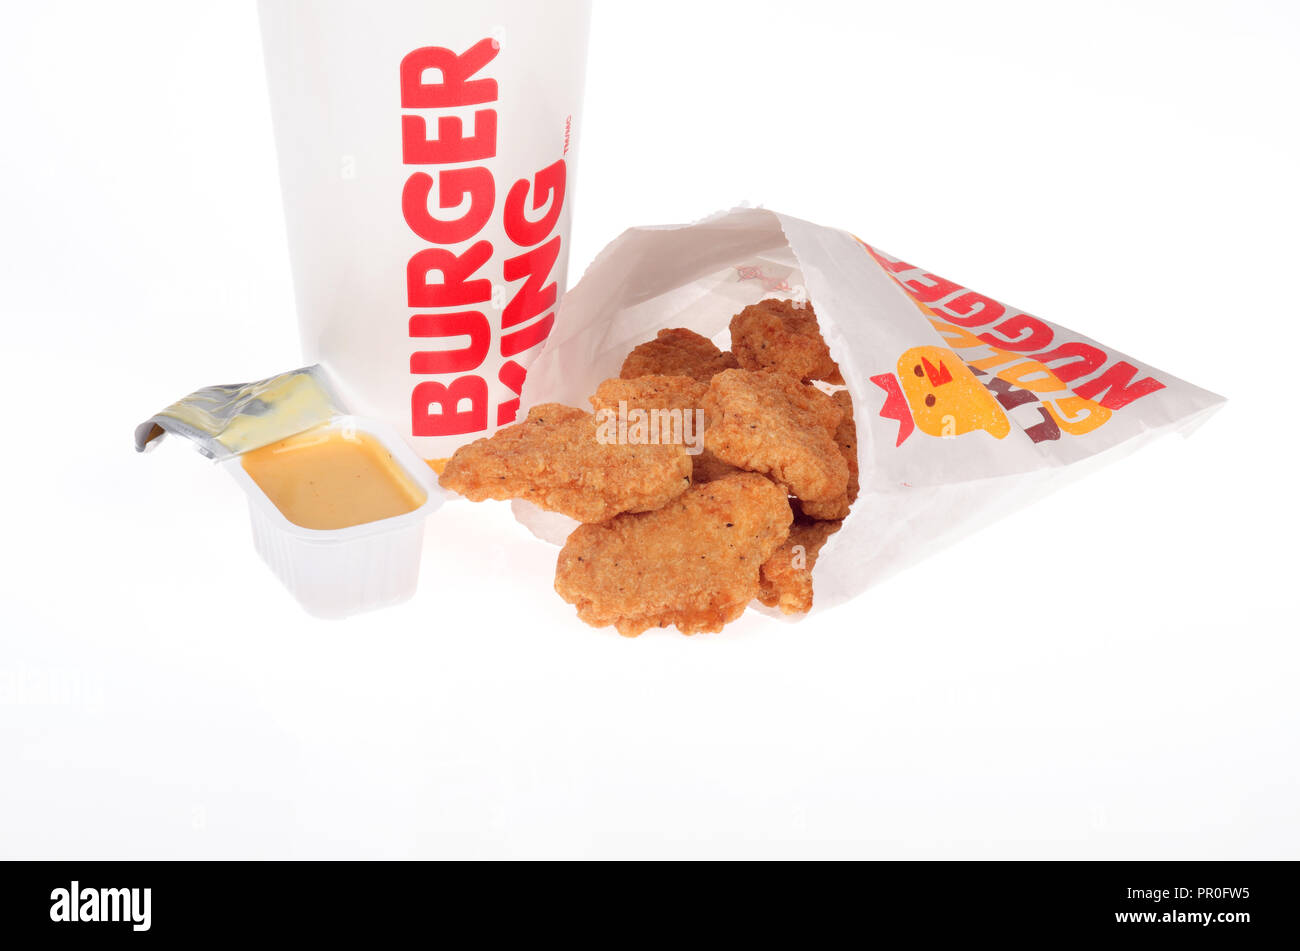 Burger King chicken nuggets with honey mustard dipping sauce and a drink cup - Stock Image